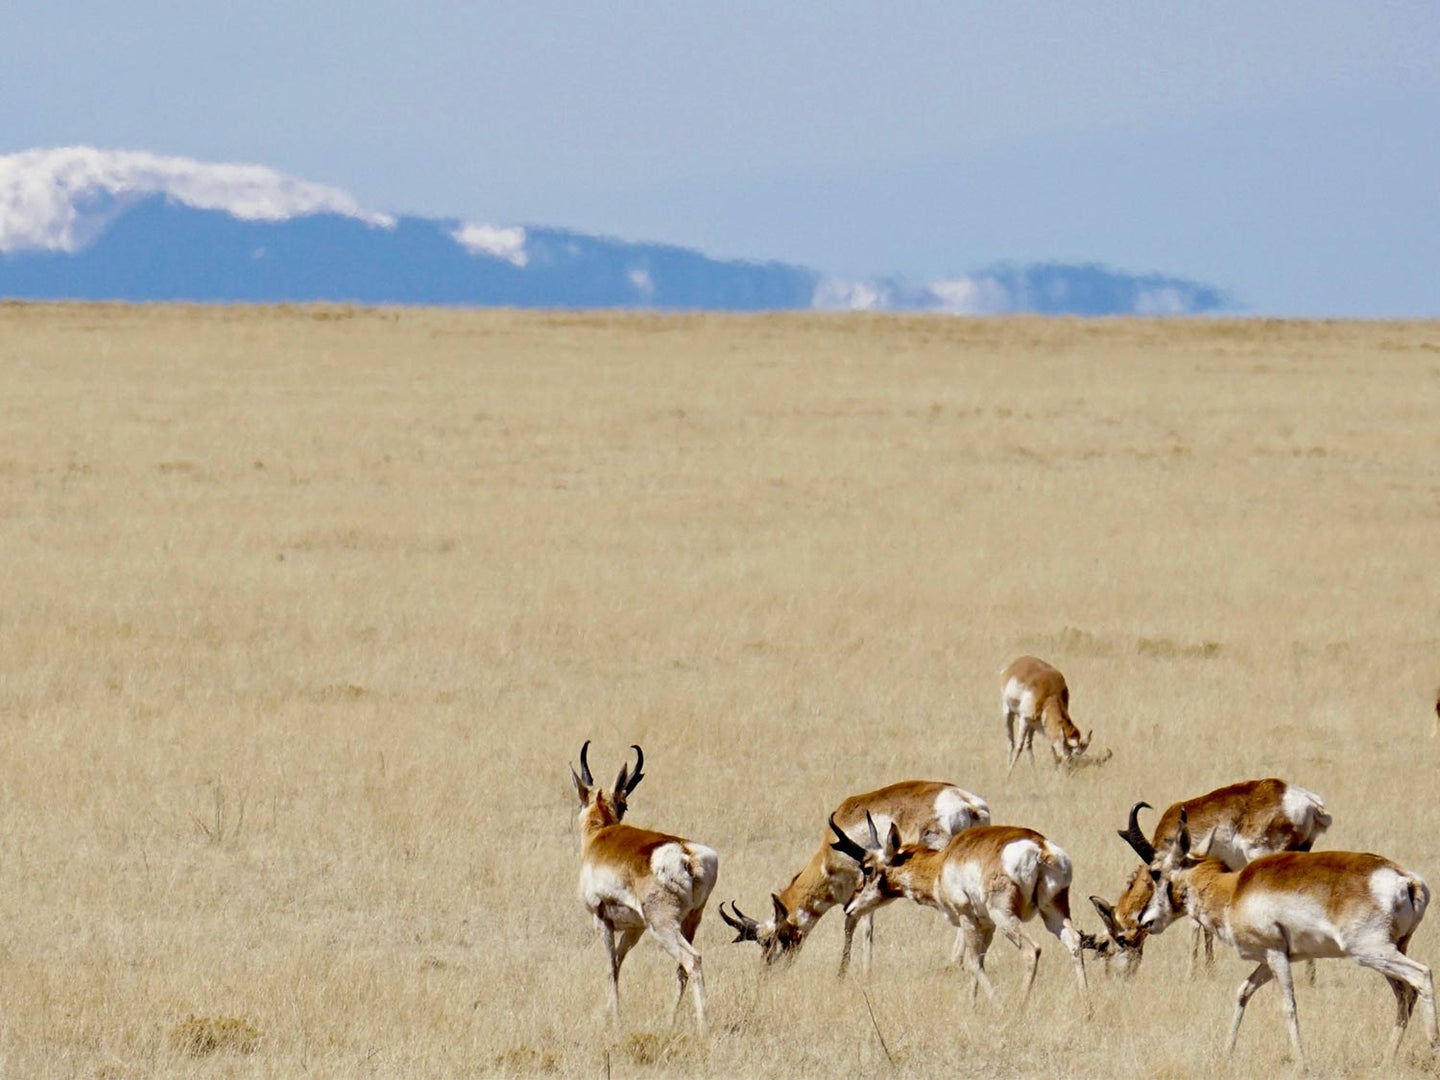 A herd of antelopes in a large open plain.